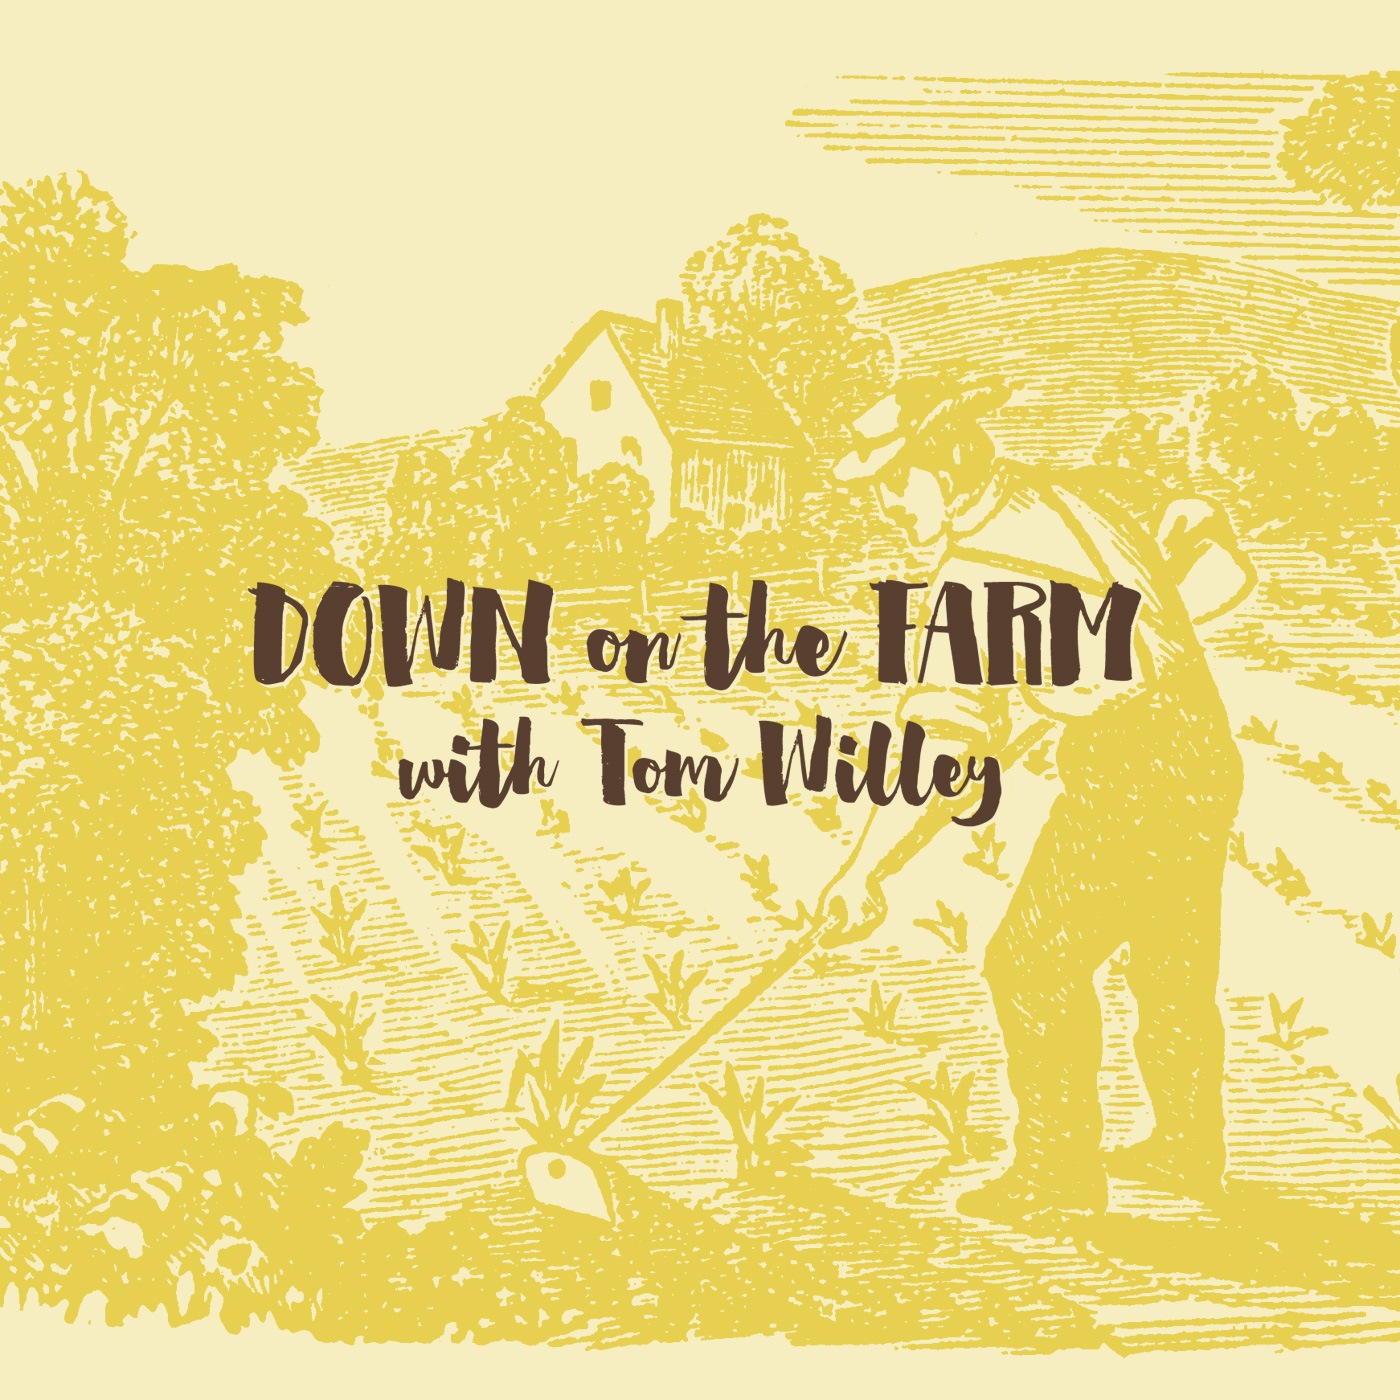 Down on the Farm with Tom Willey